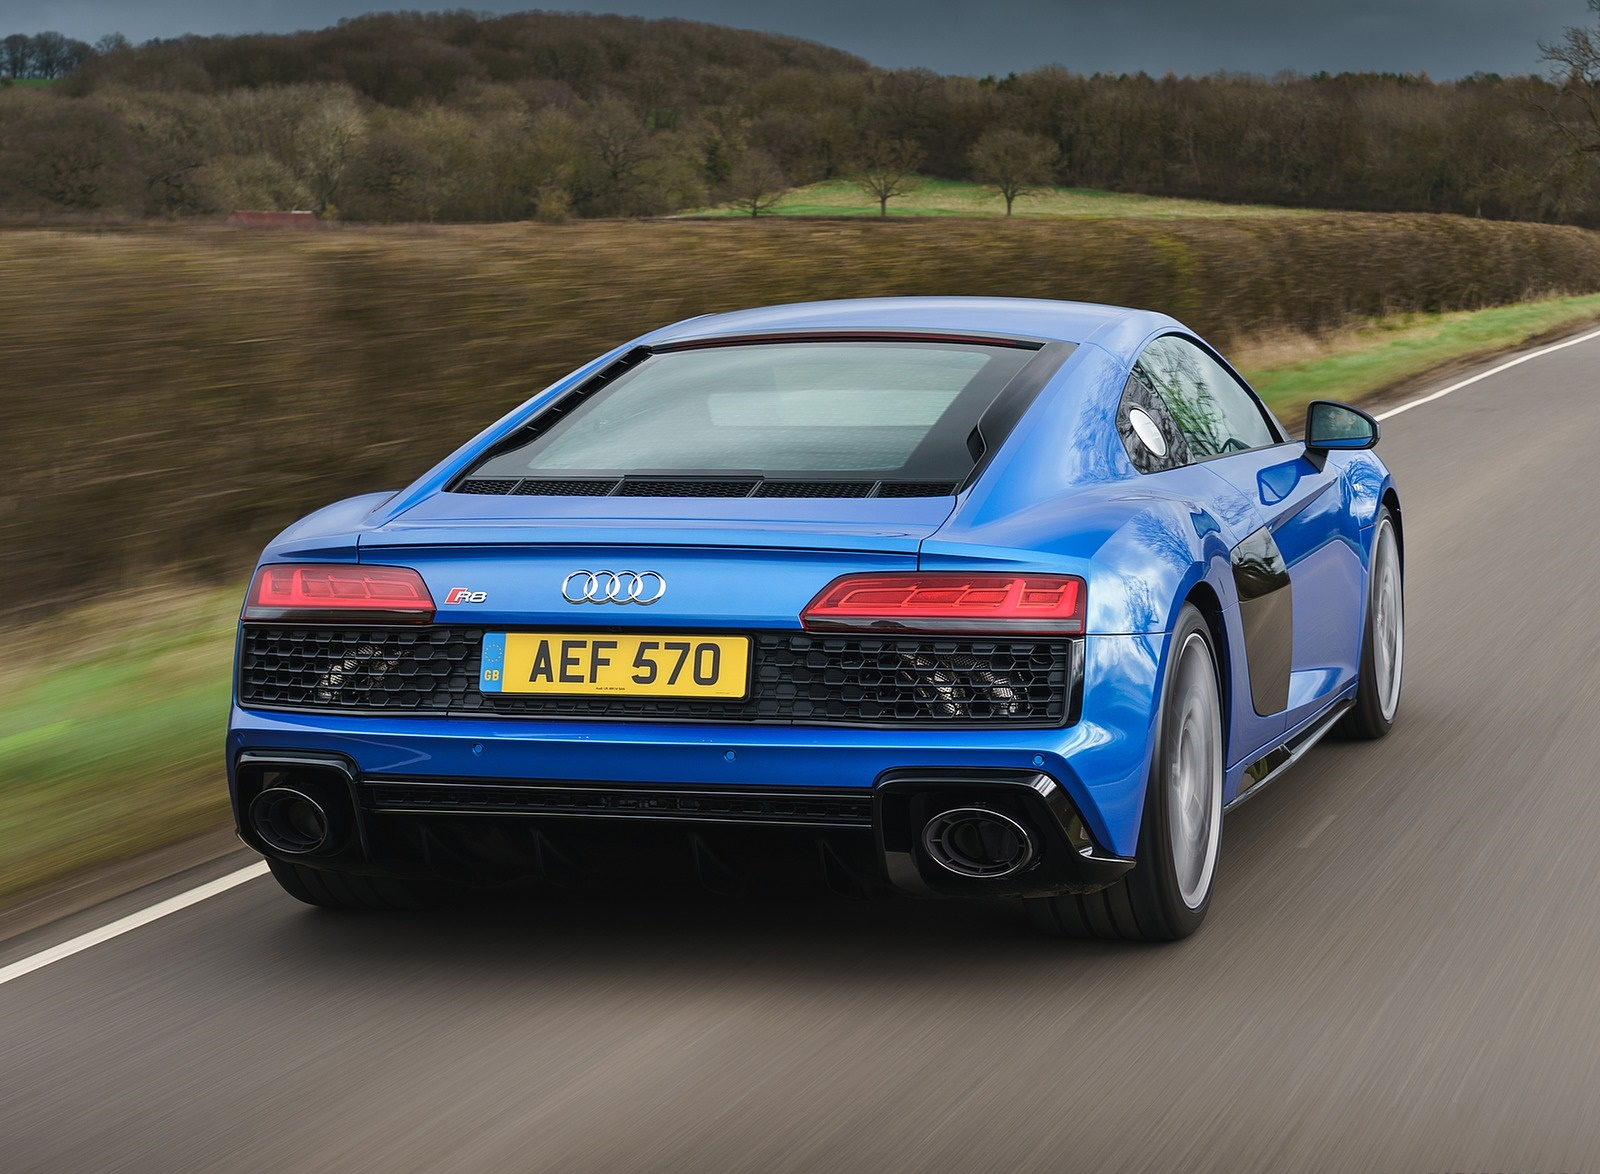 2019 Audi R8 V10 Coupe quattro (UK-Spec) Rear Wallpaper (11)